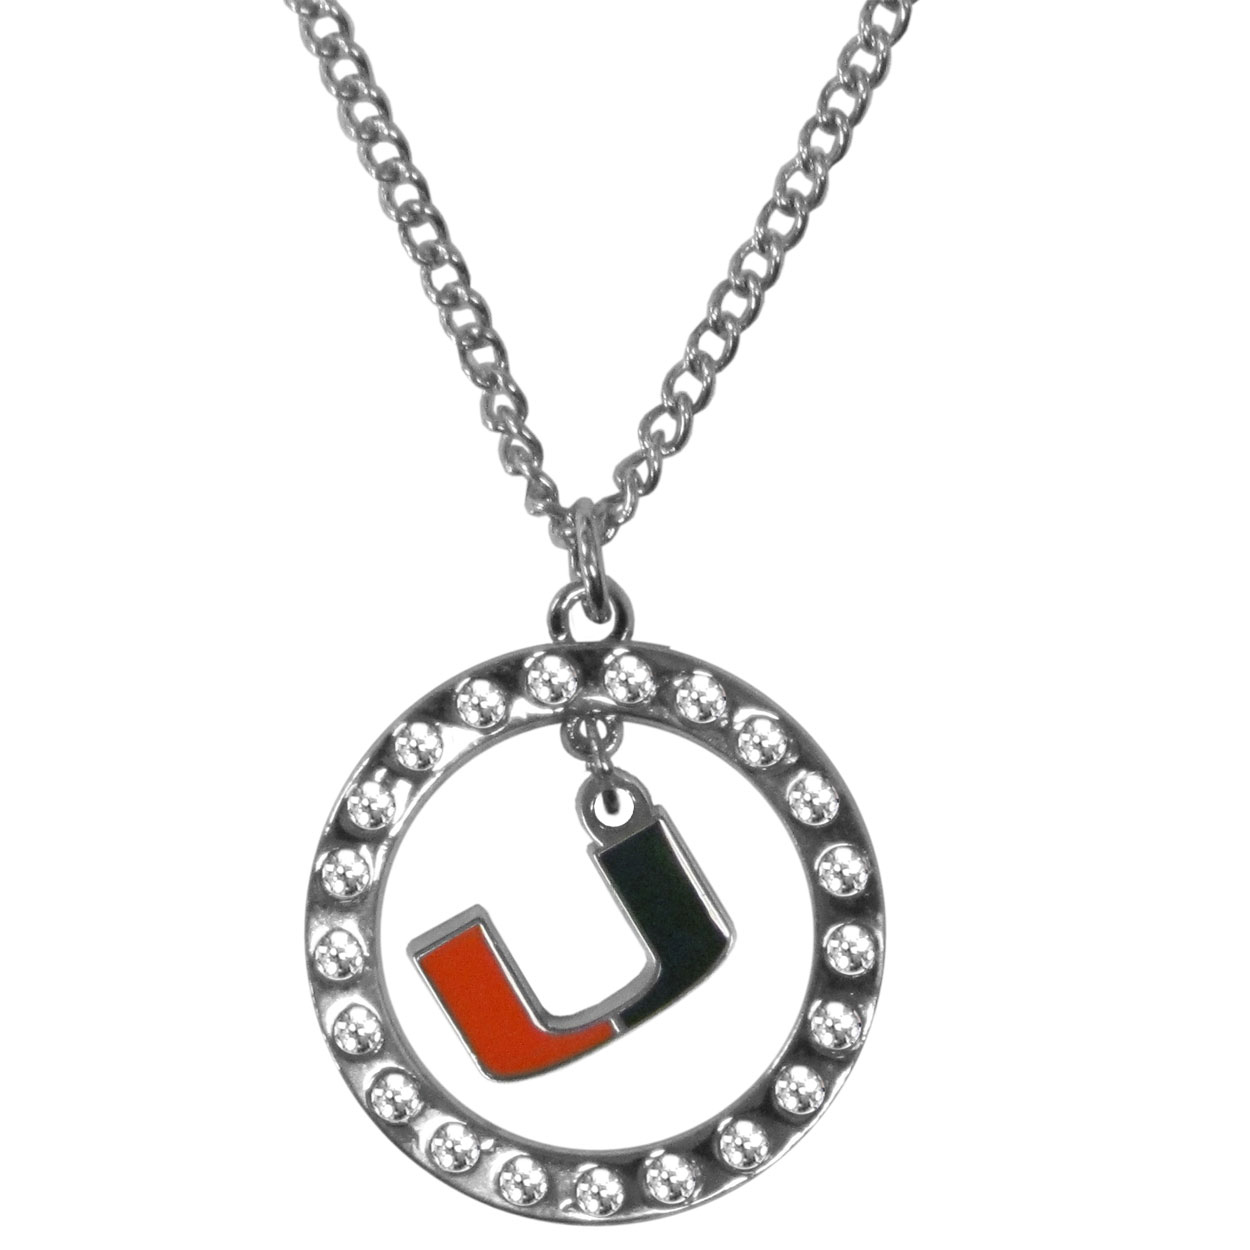 Miami Hurricanes Rhinestone Hoop Necklaces - Our Miami Hurricanes rhinestone hoop necklace comes on an 18 inch chain and features a hoop covered in rhinestones with a high polish chrome finish and a cast and enameled team charm dangling in the center.